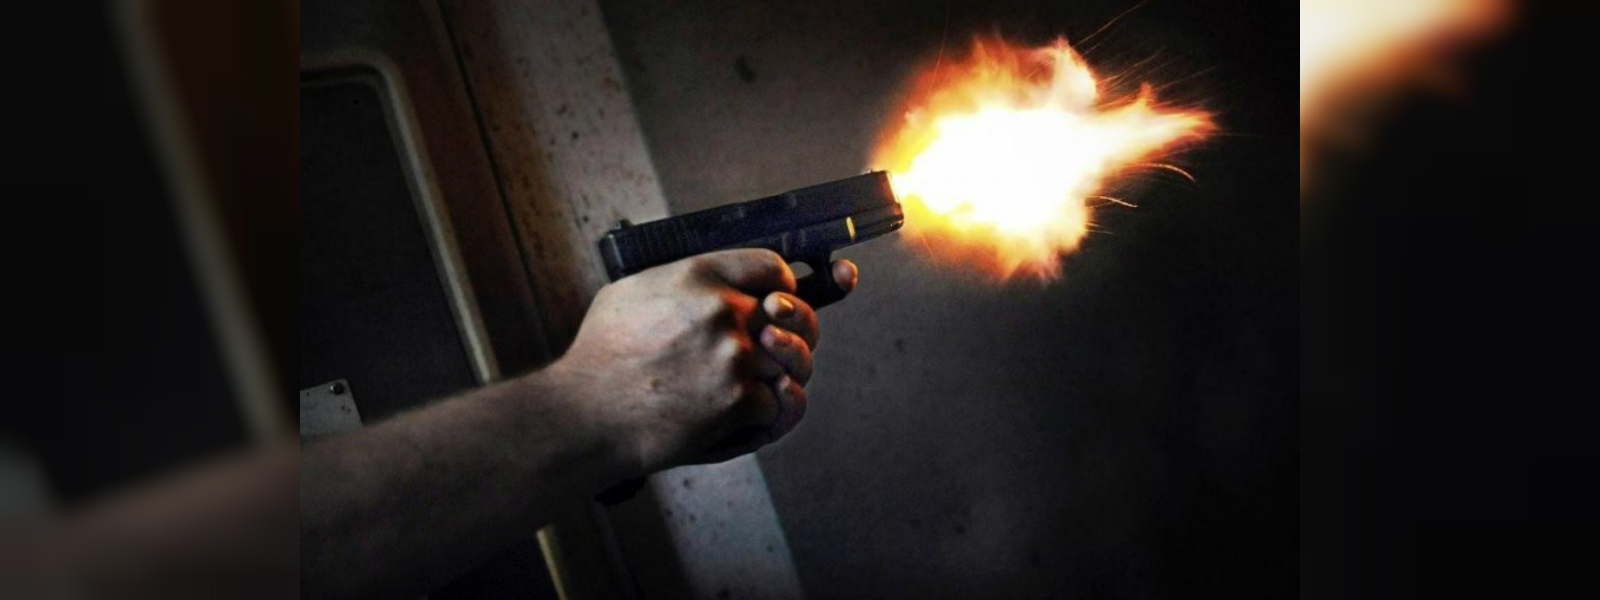 41-year-old shot dead in Wellawaya